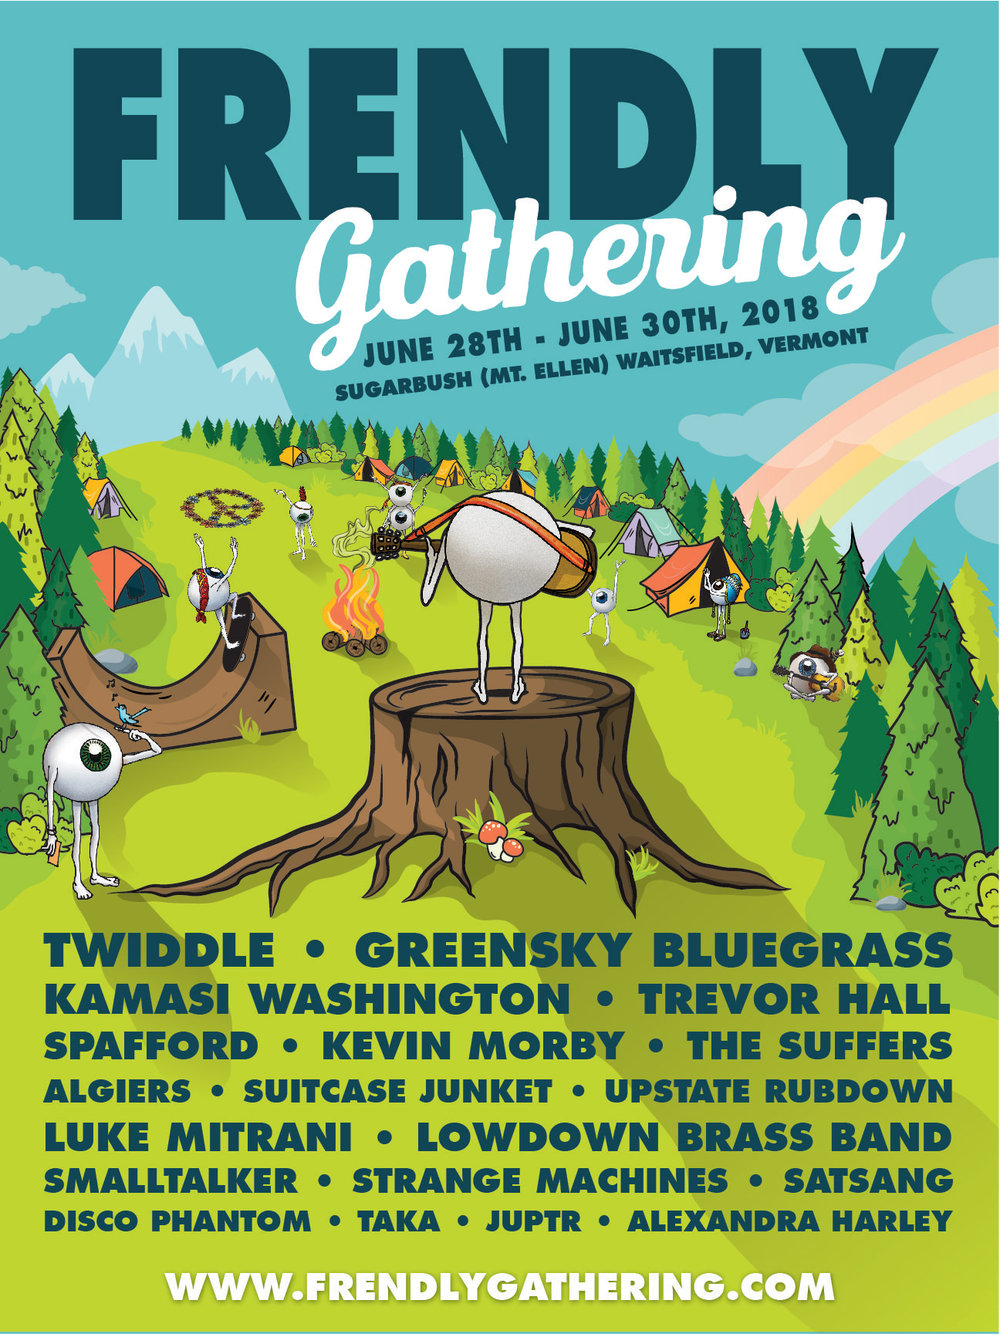 Frendly Gathering Initial Lineup RGB (For Web).jpg